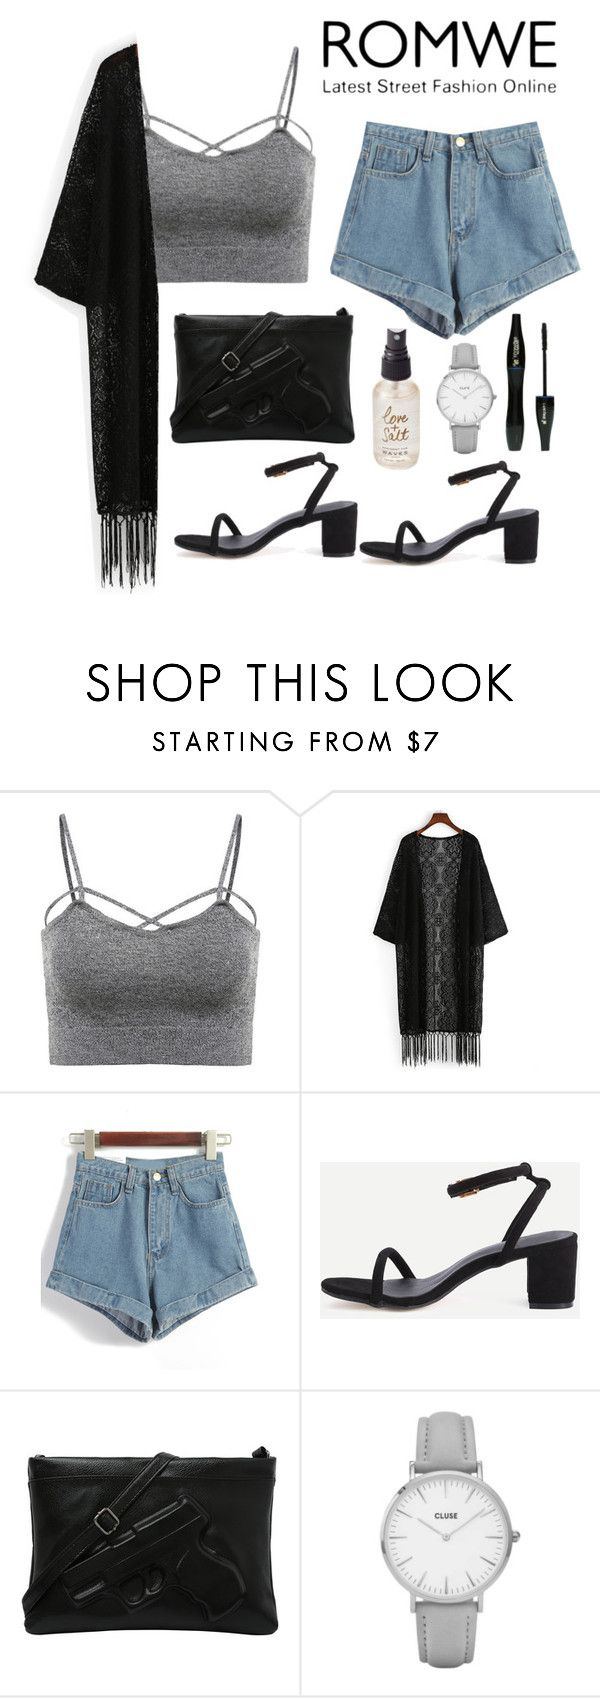 """Sin título #555"" by bethsalash ❤ liked on Polyvore featuring Topshop, Olivine and Lancôme"